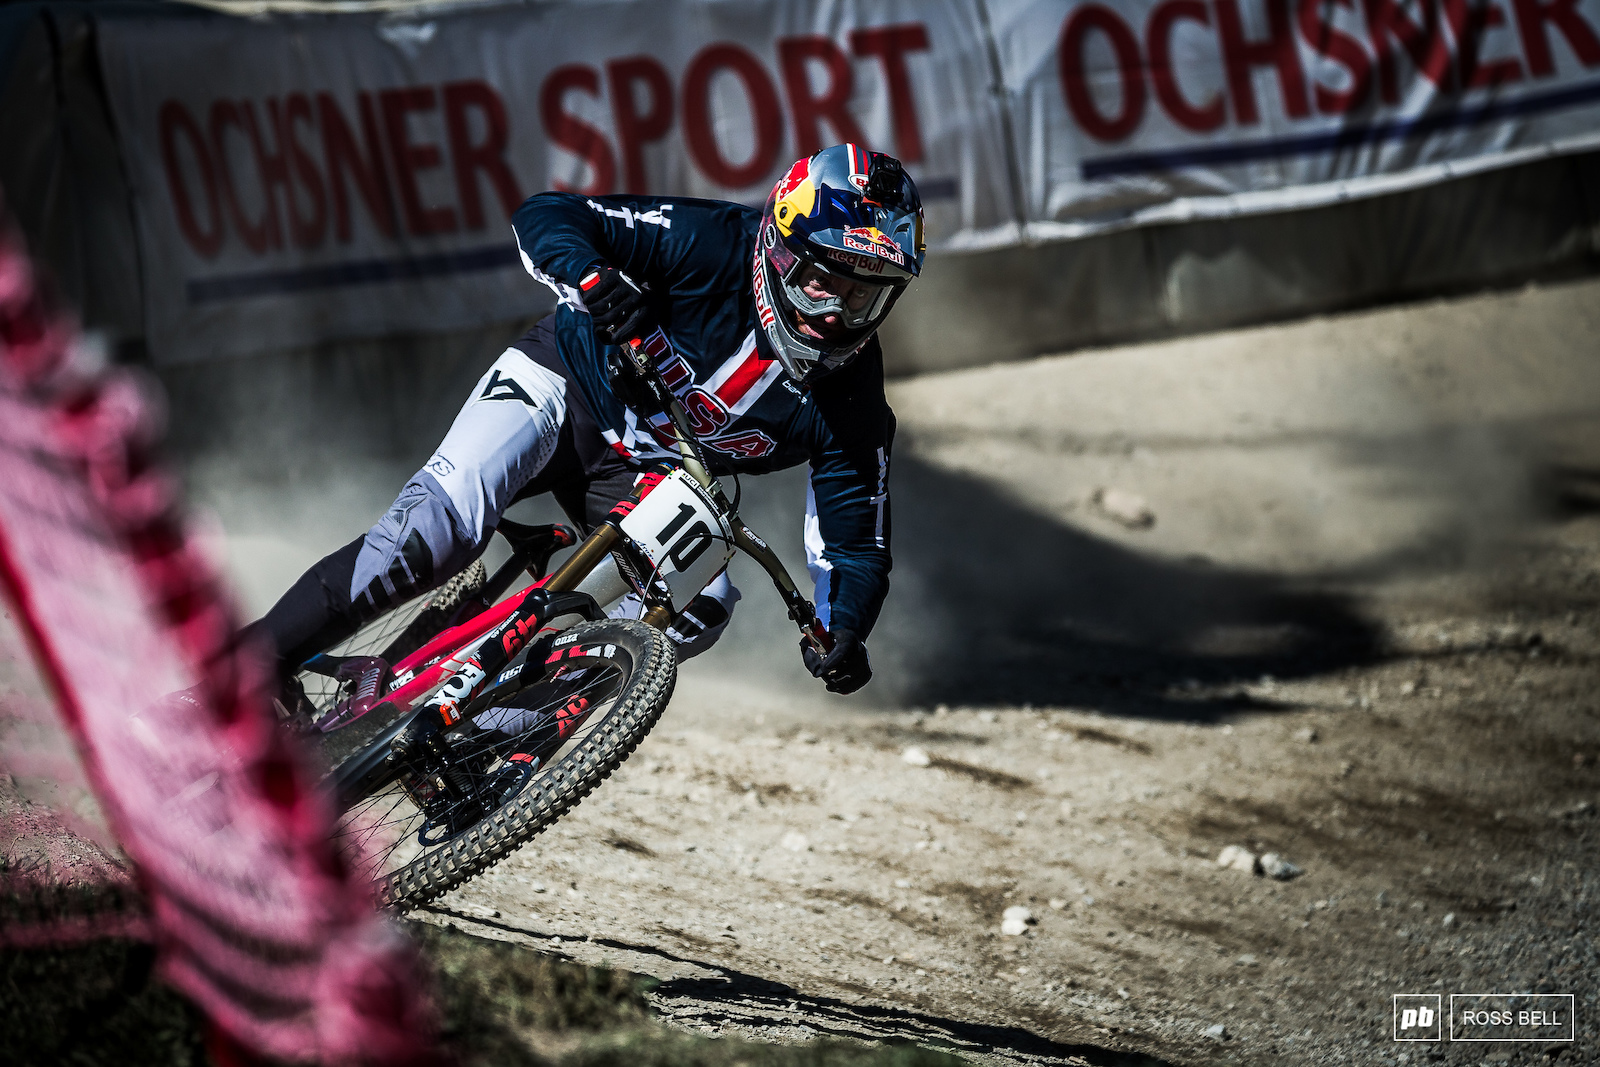 Aaron Gwin rails the final turn with the finish line drop in his sights. Gwin s search for World Championship gold goes on.